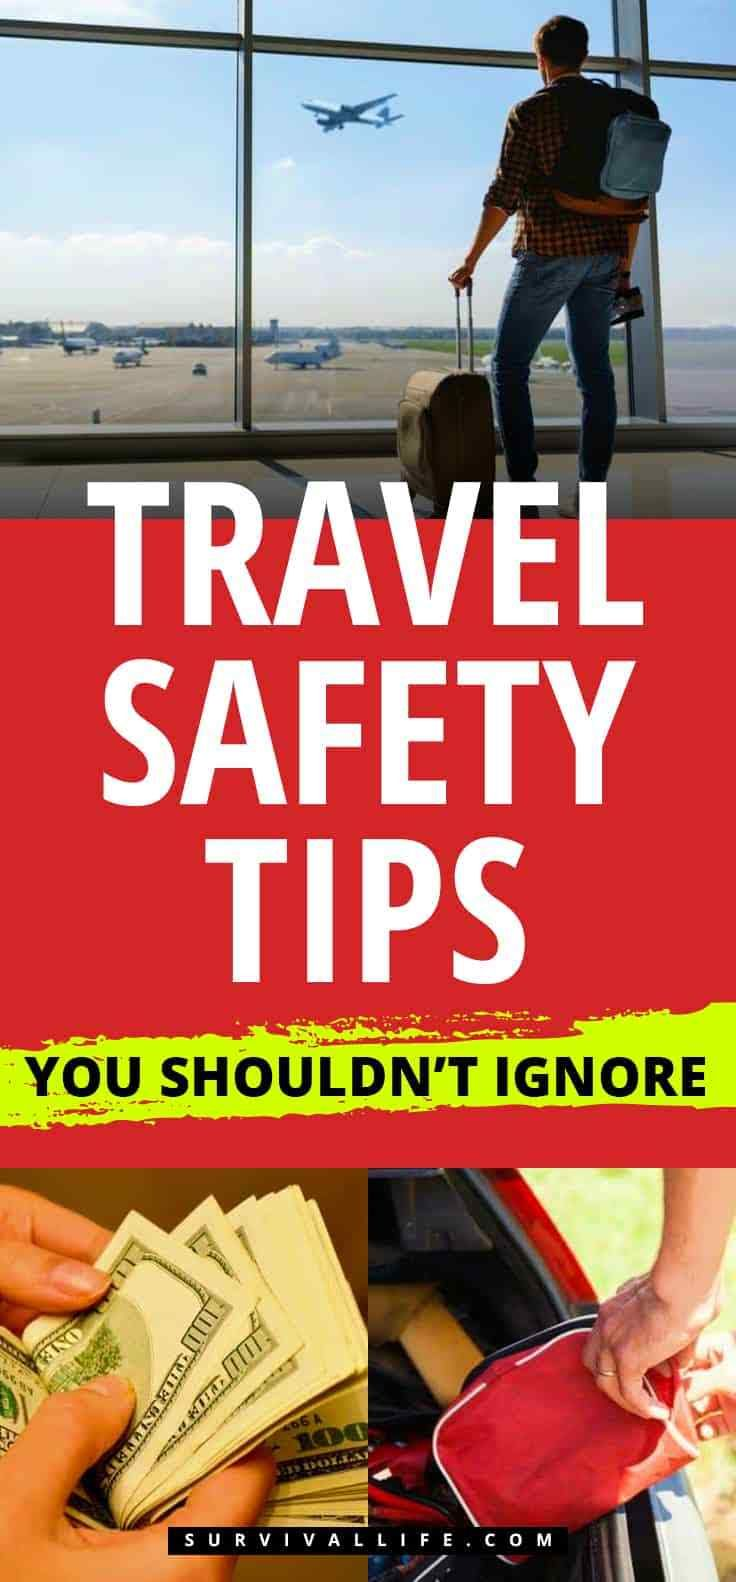 Travel Safety Tips You Shouldn't Ignore Survival Life in